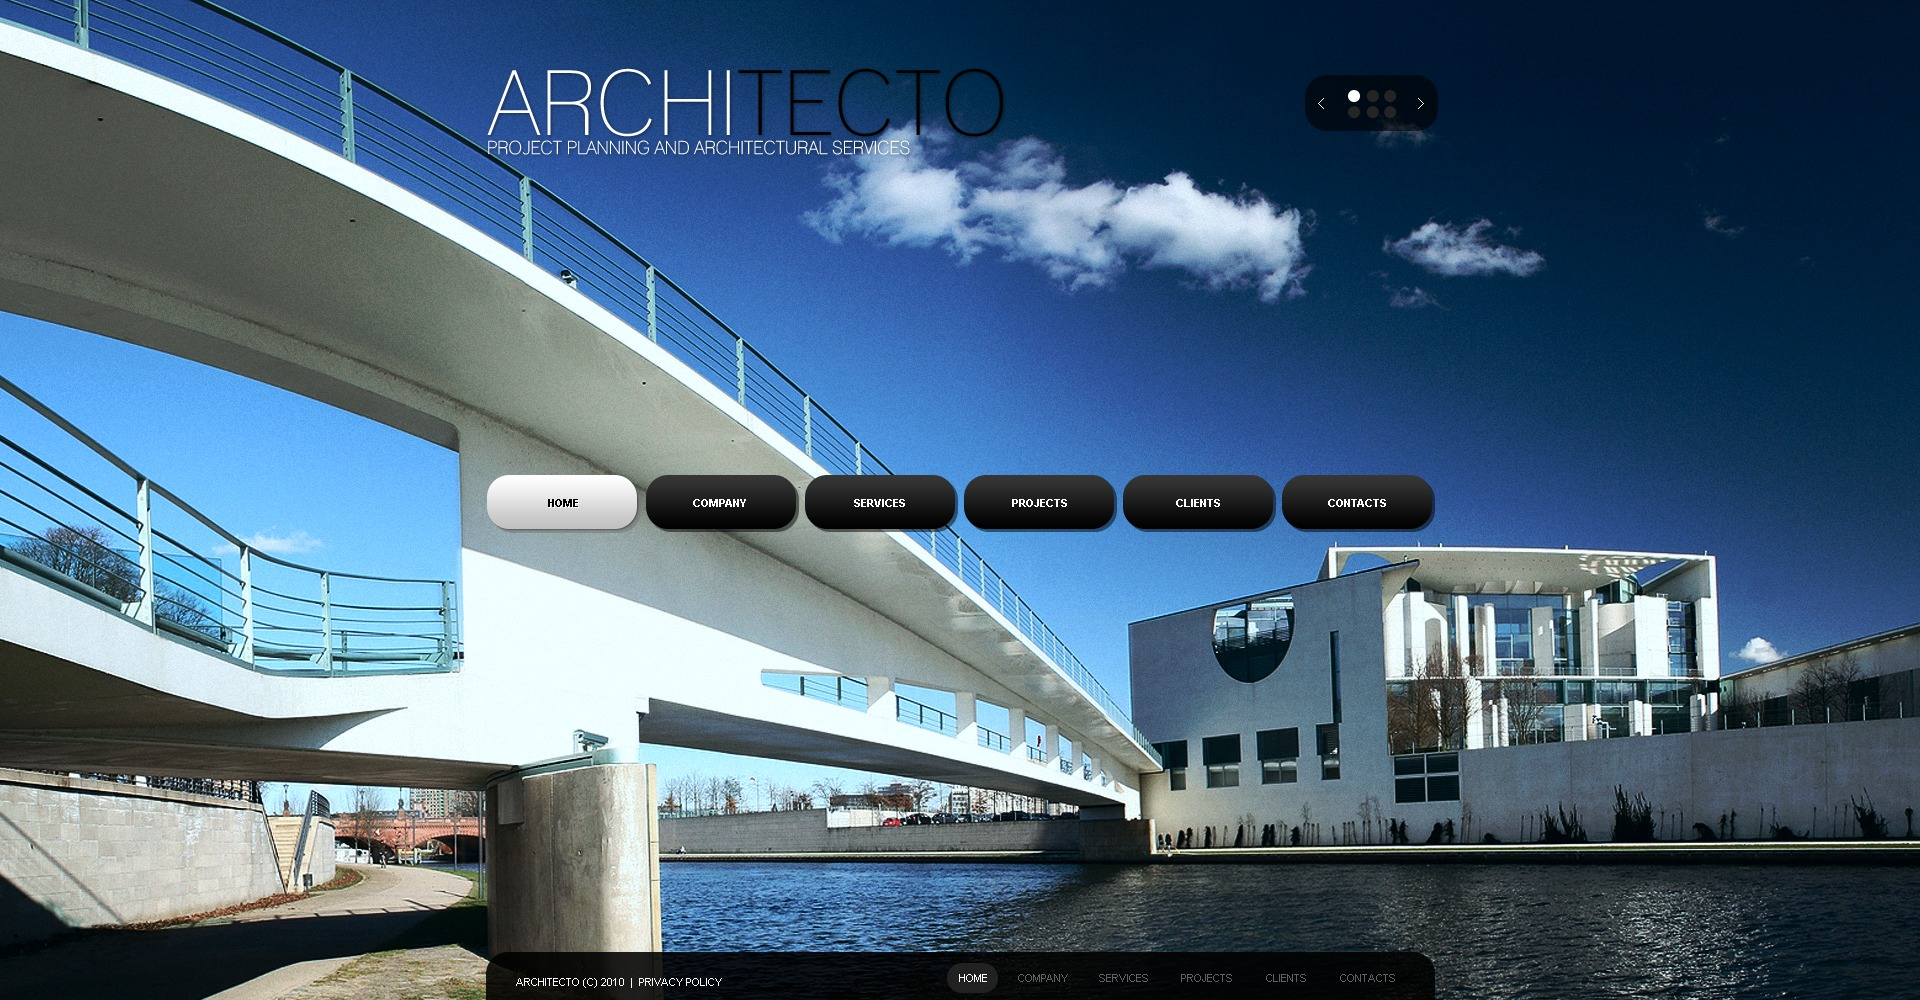 The Architecto Architecture Company PSD Design 54321, one of the best PSD templates of its kind (architecture, most popular, wide, jquery), also known as architecto architecture company PSD template, buildings PSD template, technology PSD template, innovation PSD template, skyscrapers PSD template, projects PSD template, constructions PSD template, houses PSD template, work PSD template, team PSD template, strategy PSD template, services PSD template, support PSD template, planning solutions design PSD template, non-standard PSD template, creative ideas PSD template, catalogue PSD template, windows PSD template, doors PSD template, equipme and related with architecto architecture company, buildings, technology, innovation, skyscrapers, projects, constructions, houses, work, team, strategy, services, support, planning solutions design, non-standard, creative ideas, catalogue, windows, doors, equipme, etc.